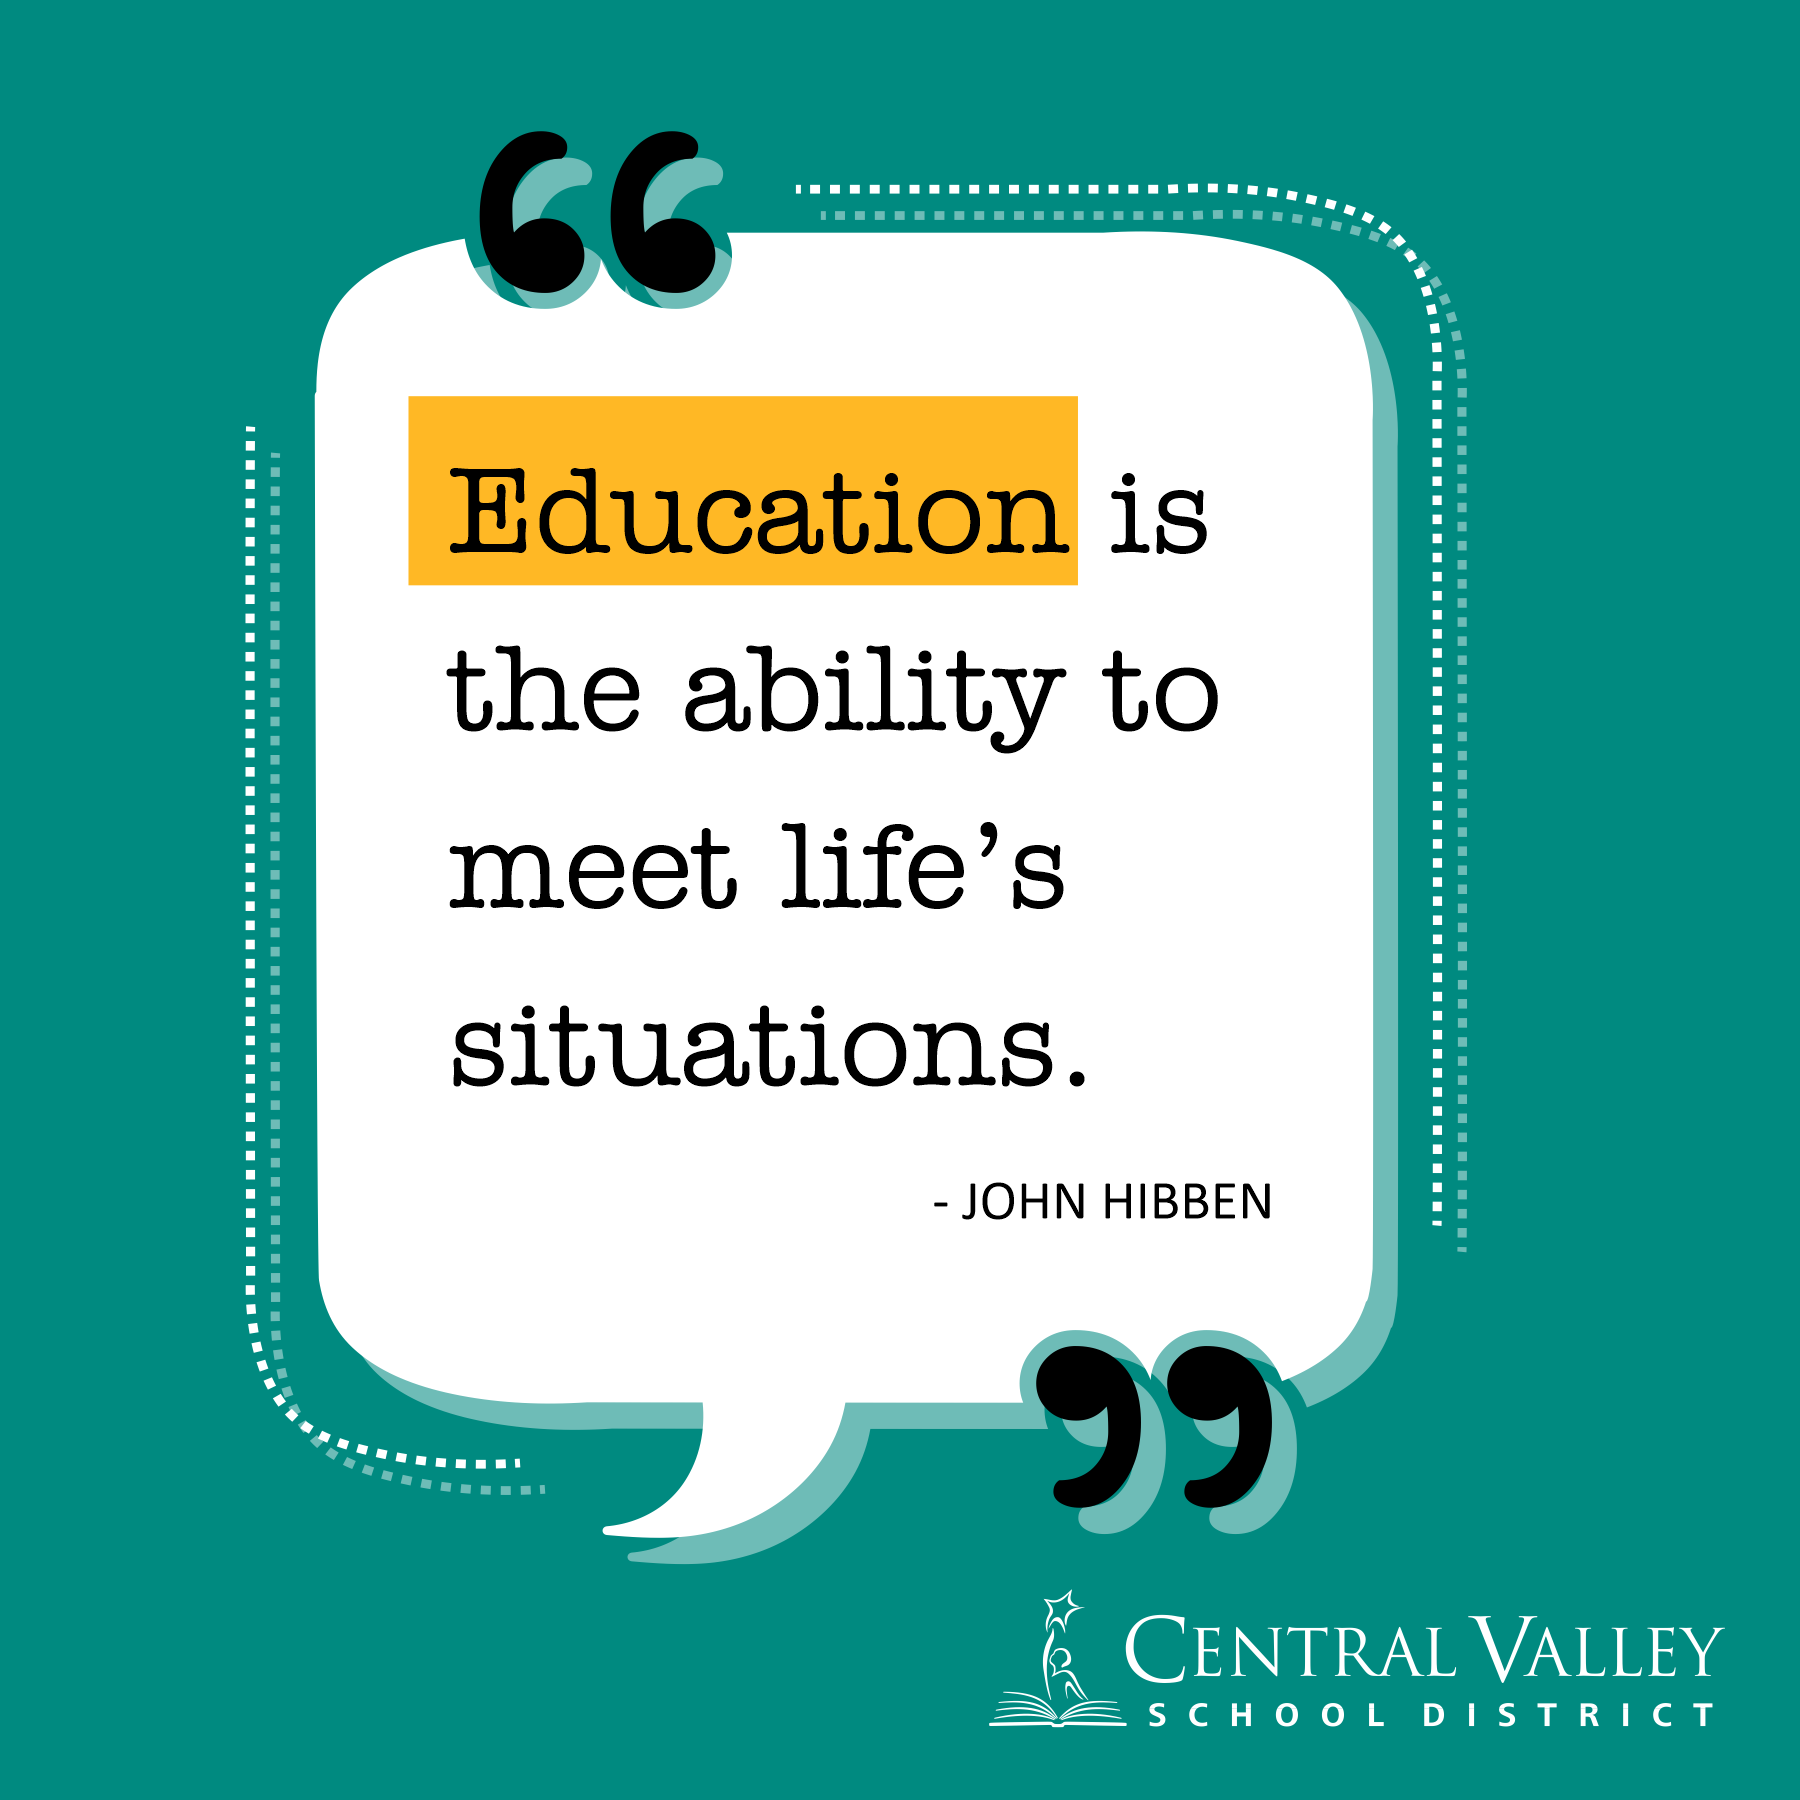 Education is the ability to meet life's situations. - John Hibben